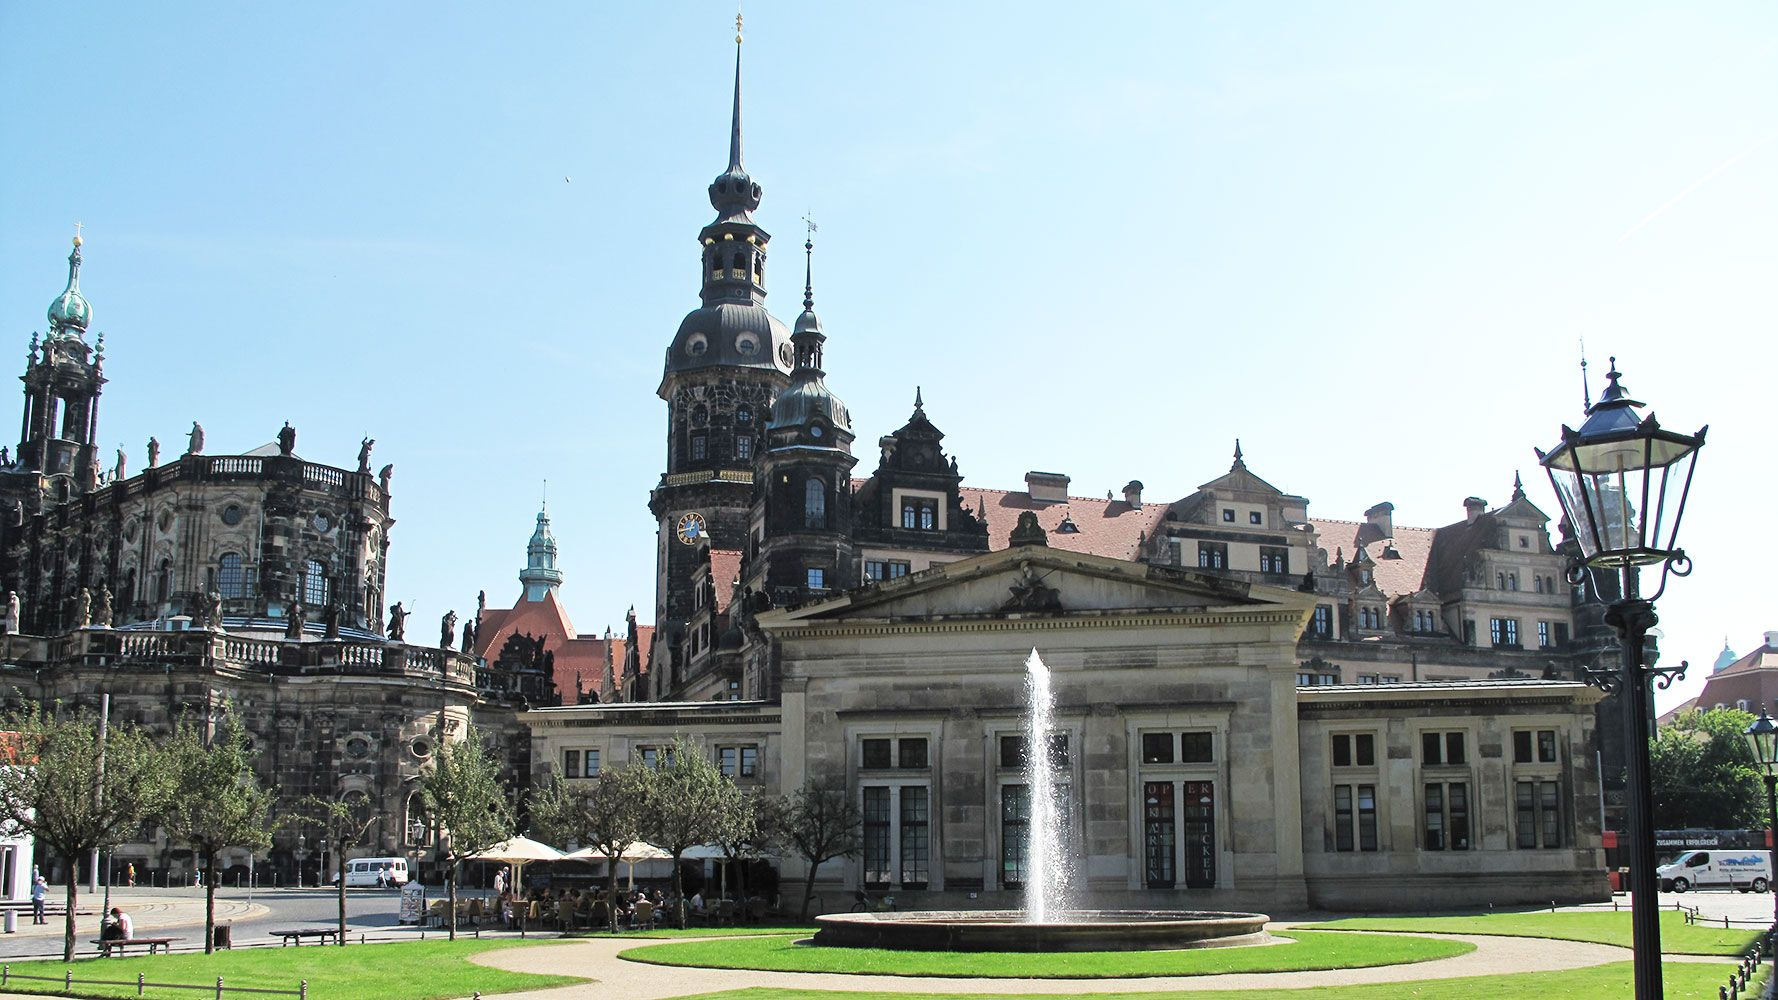 Old royal palace in Dresden city center